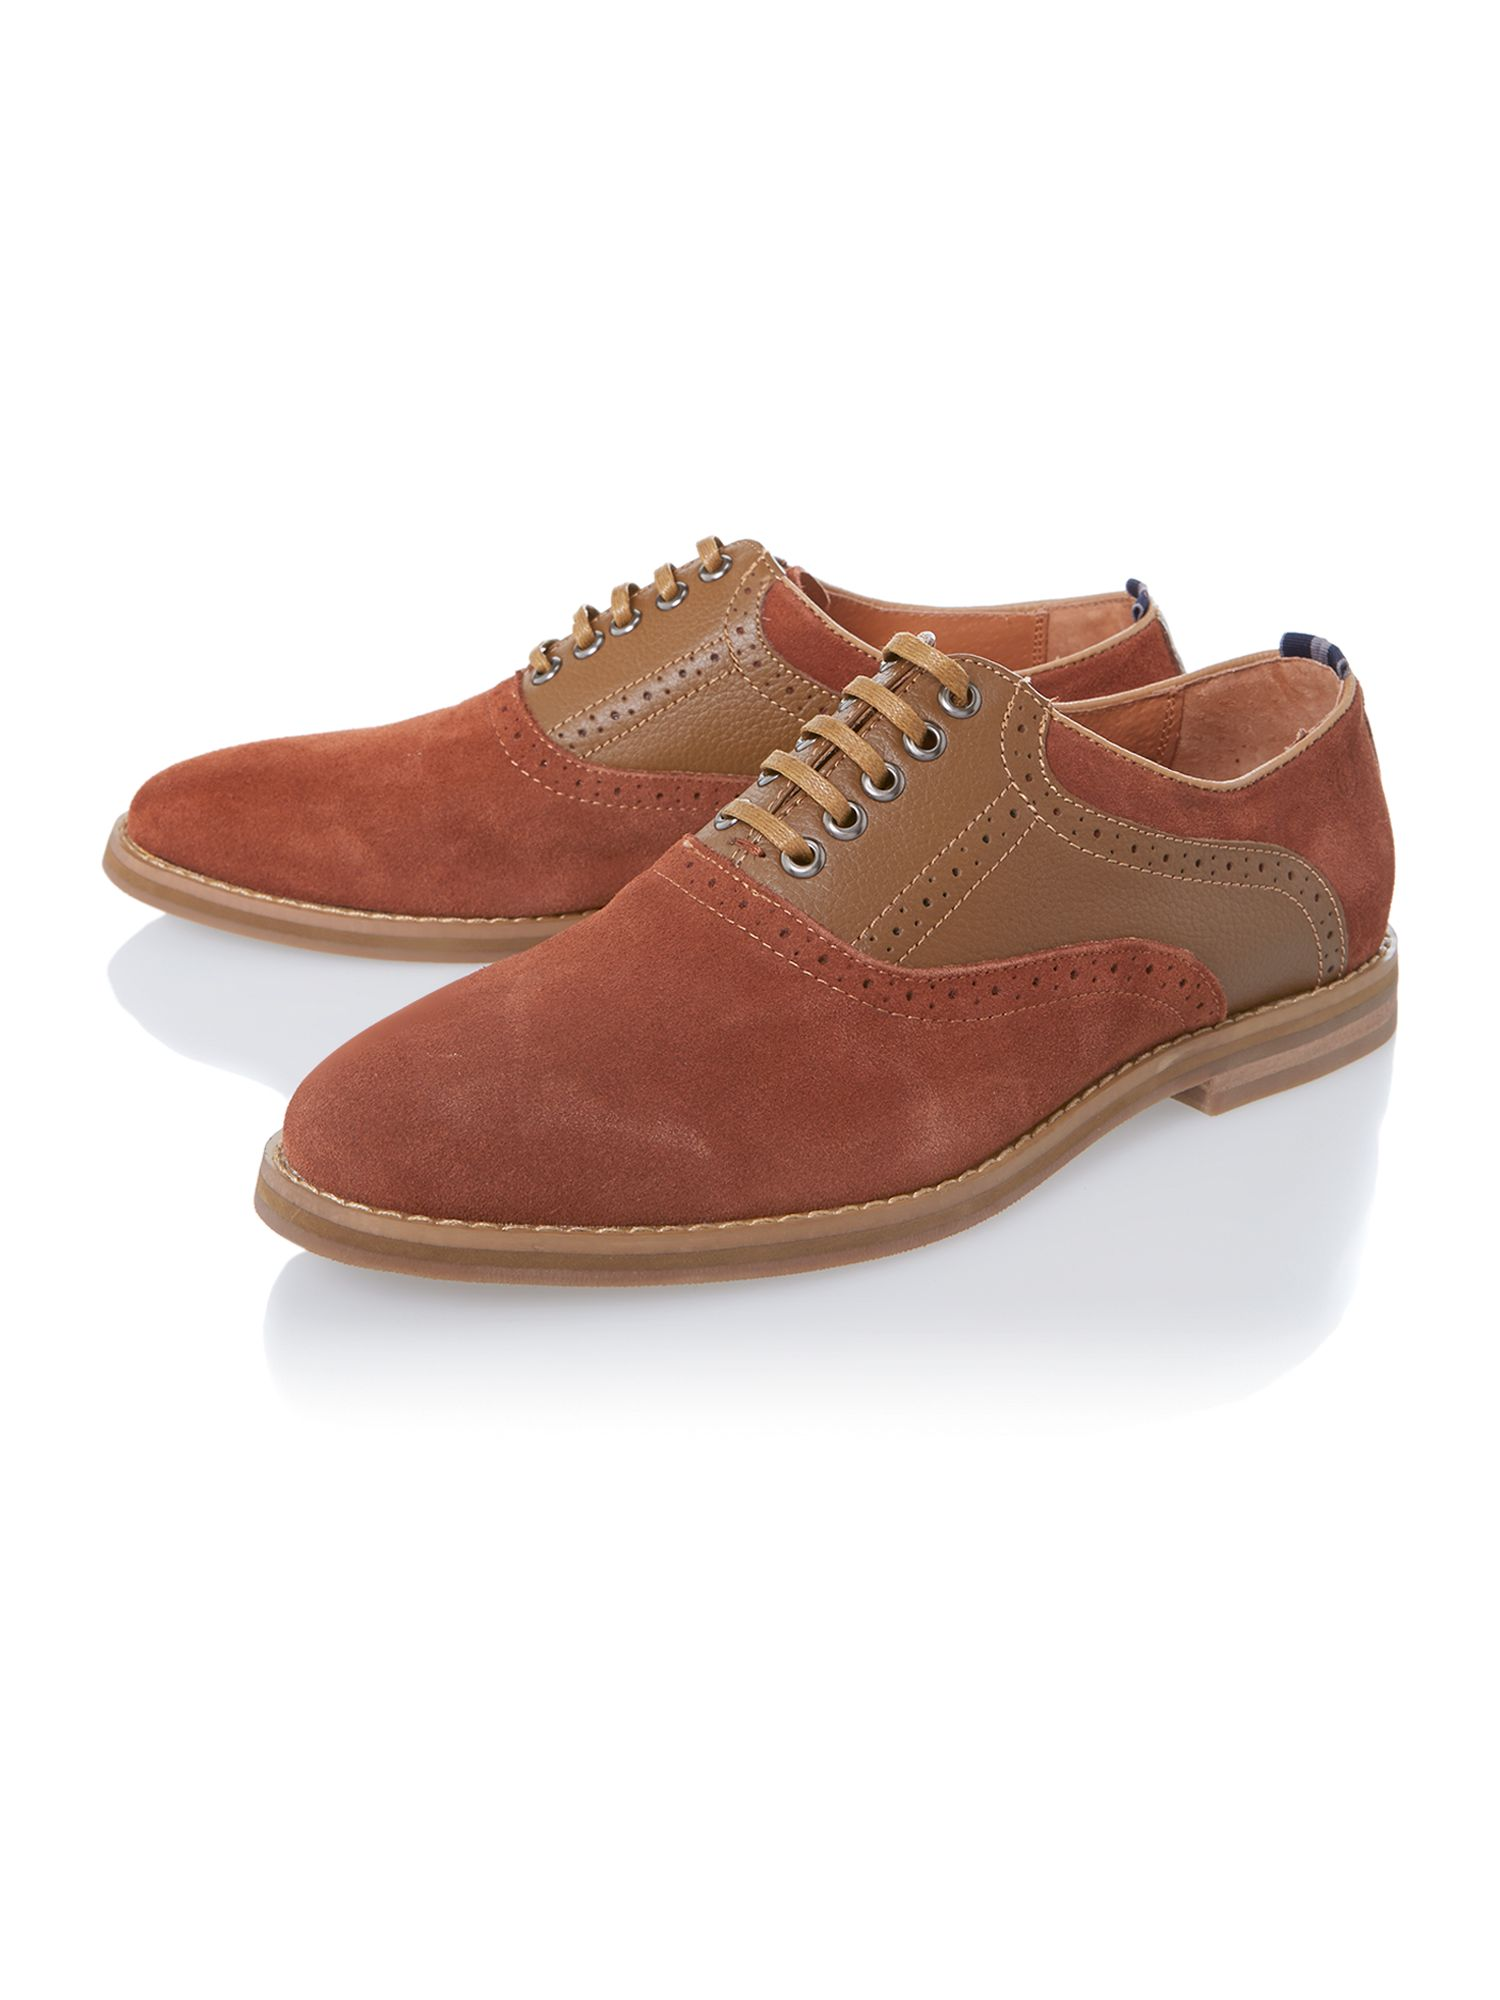 Nesbitt saddle oxford shoes